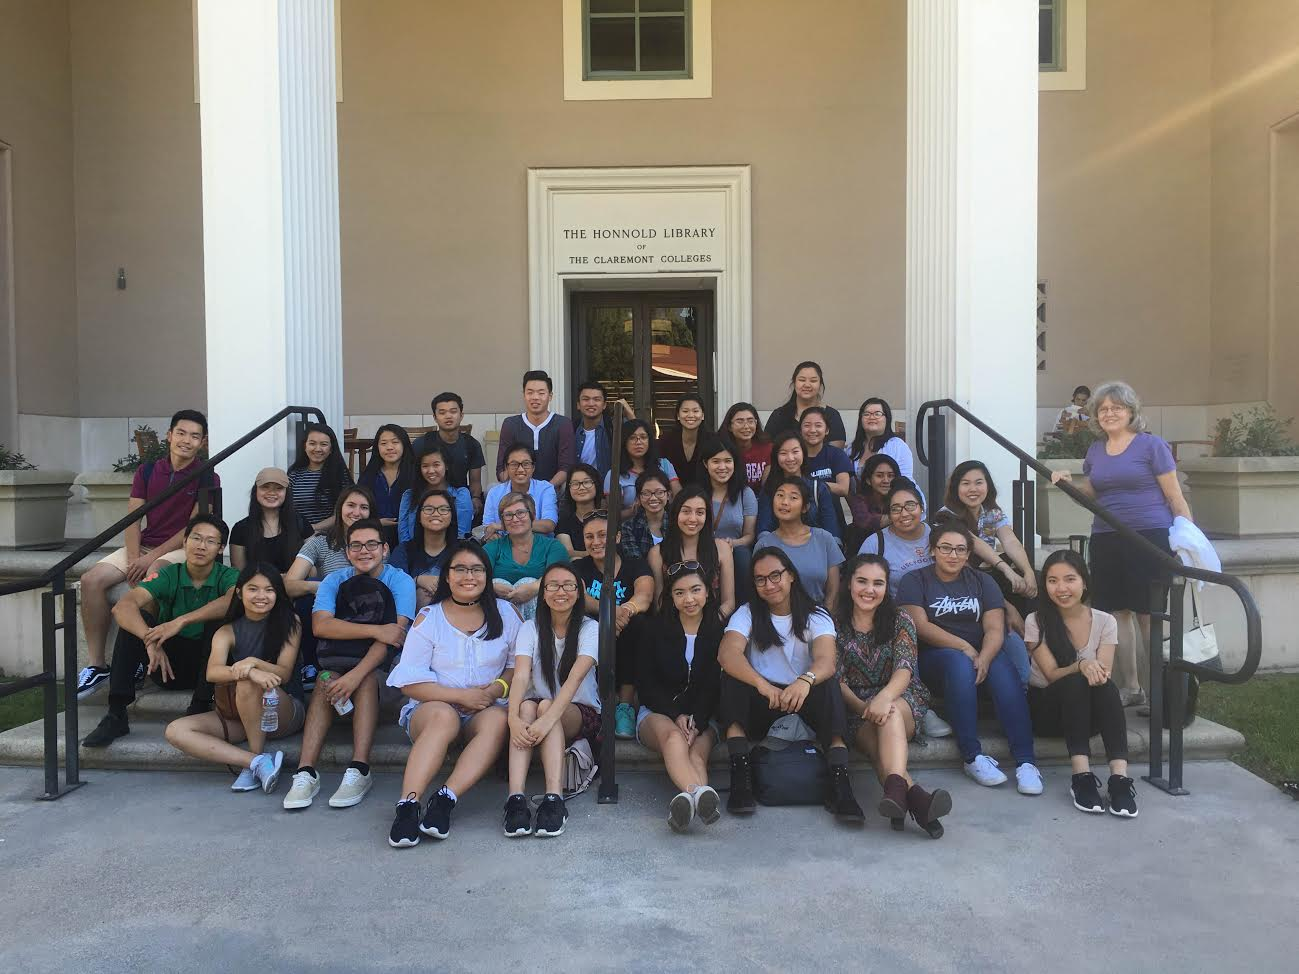 WTTF club hosts trip to Claremont colleges, promotes college readiness